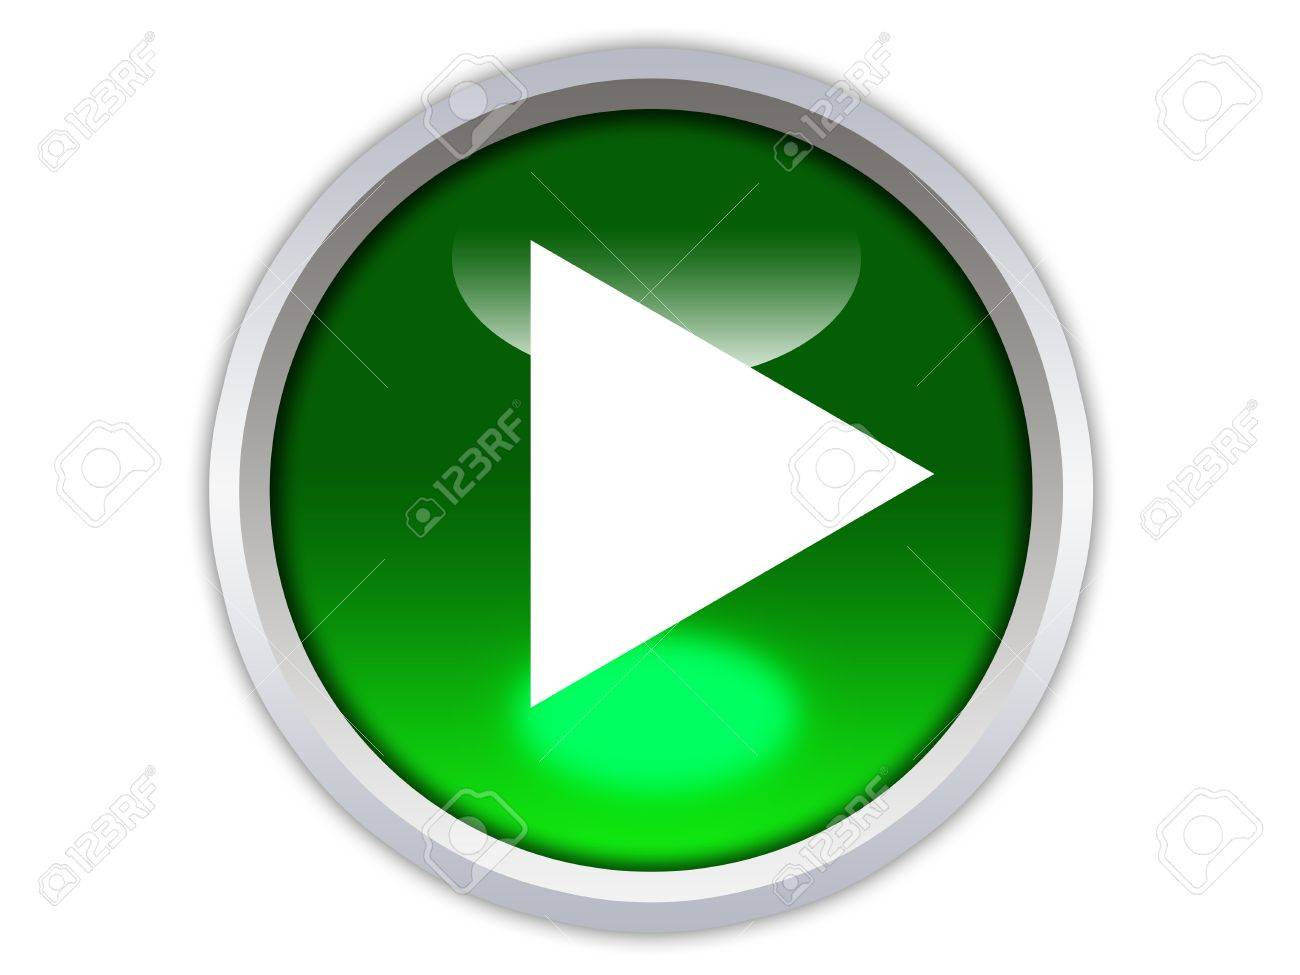 green glossy button with white triangle turned left isolated over white background Stock Photo - 12603056